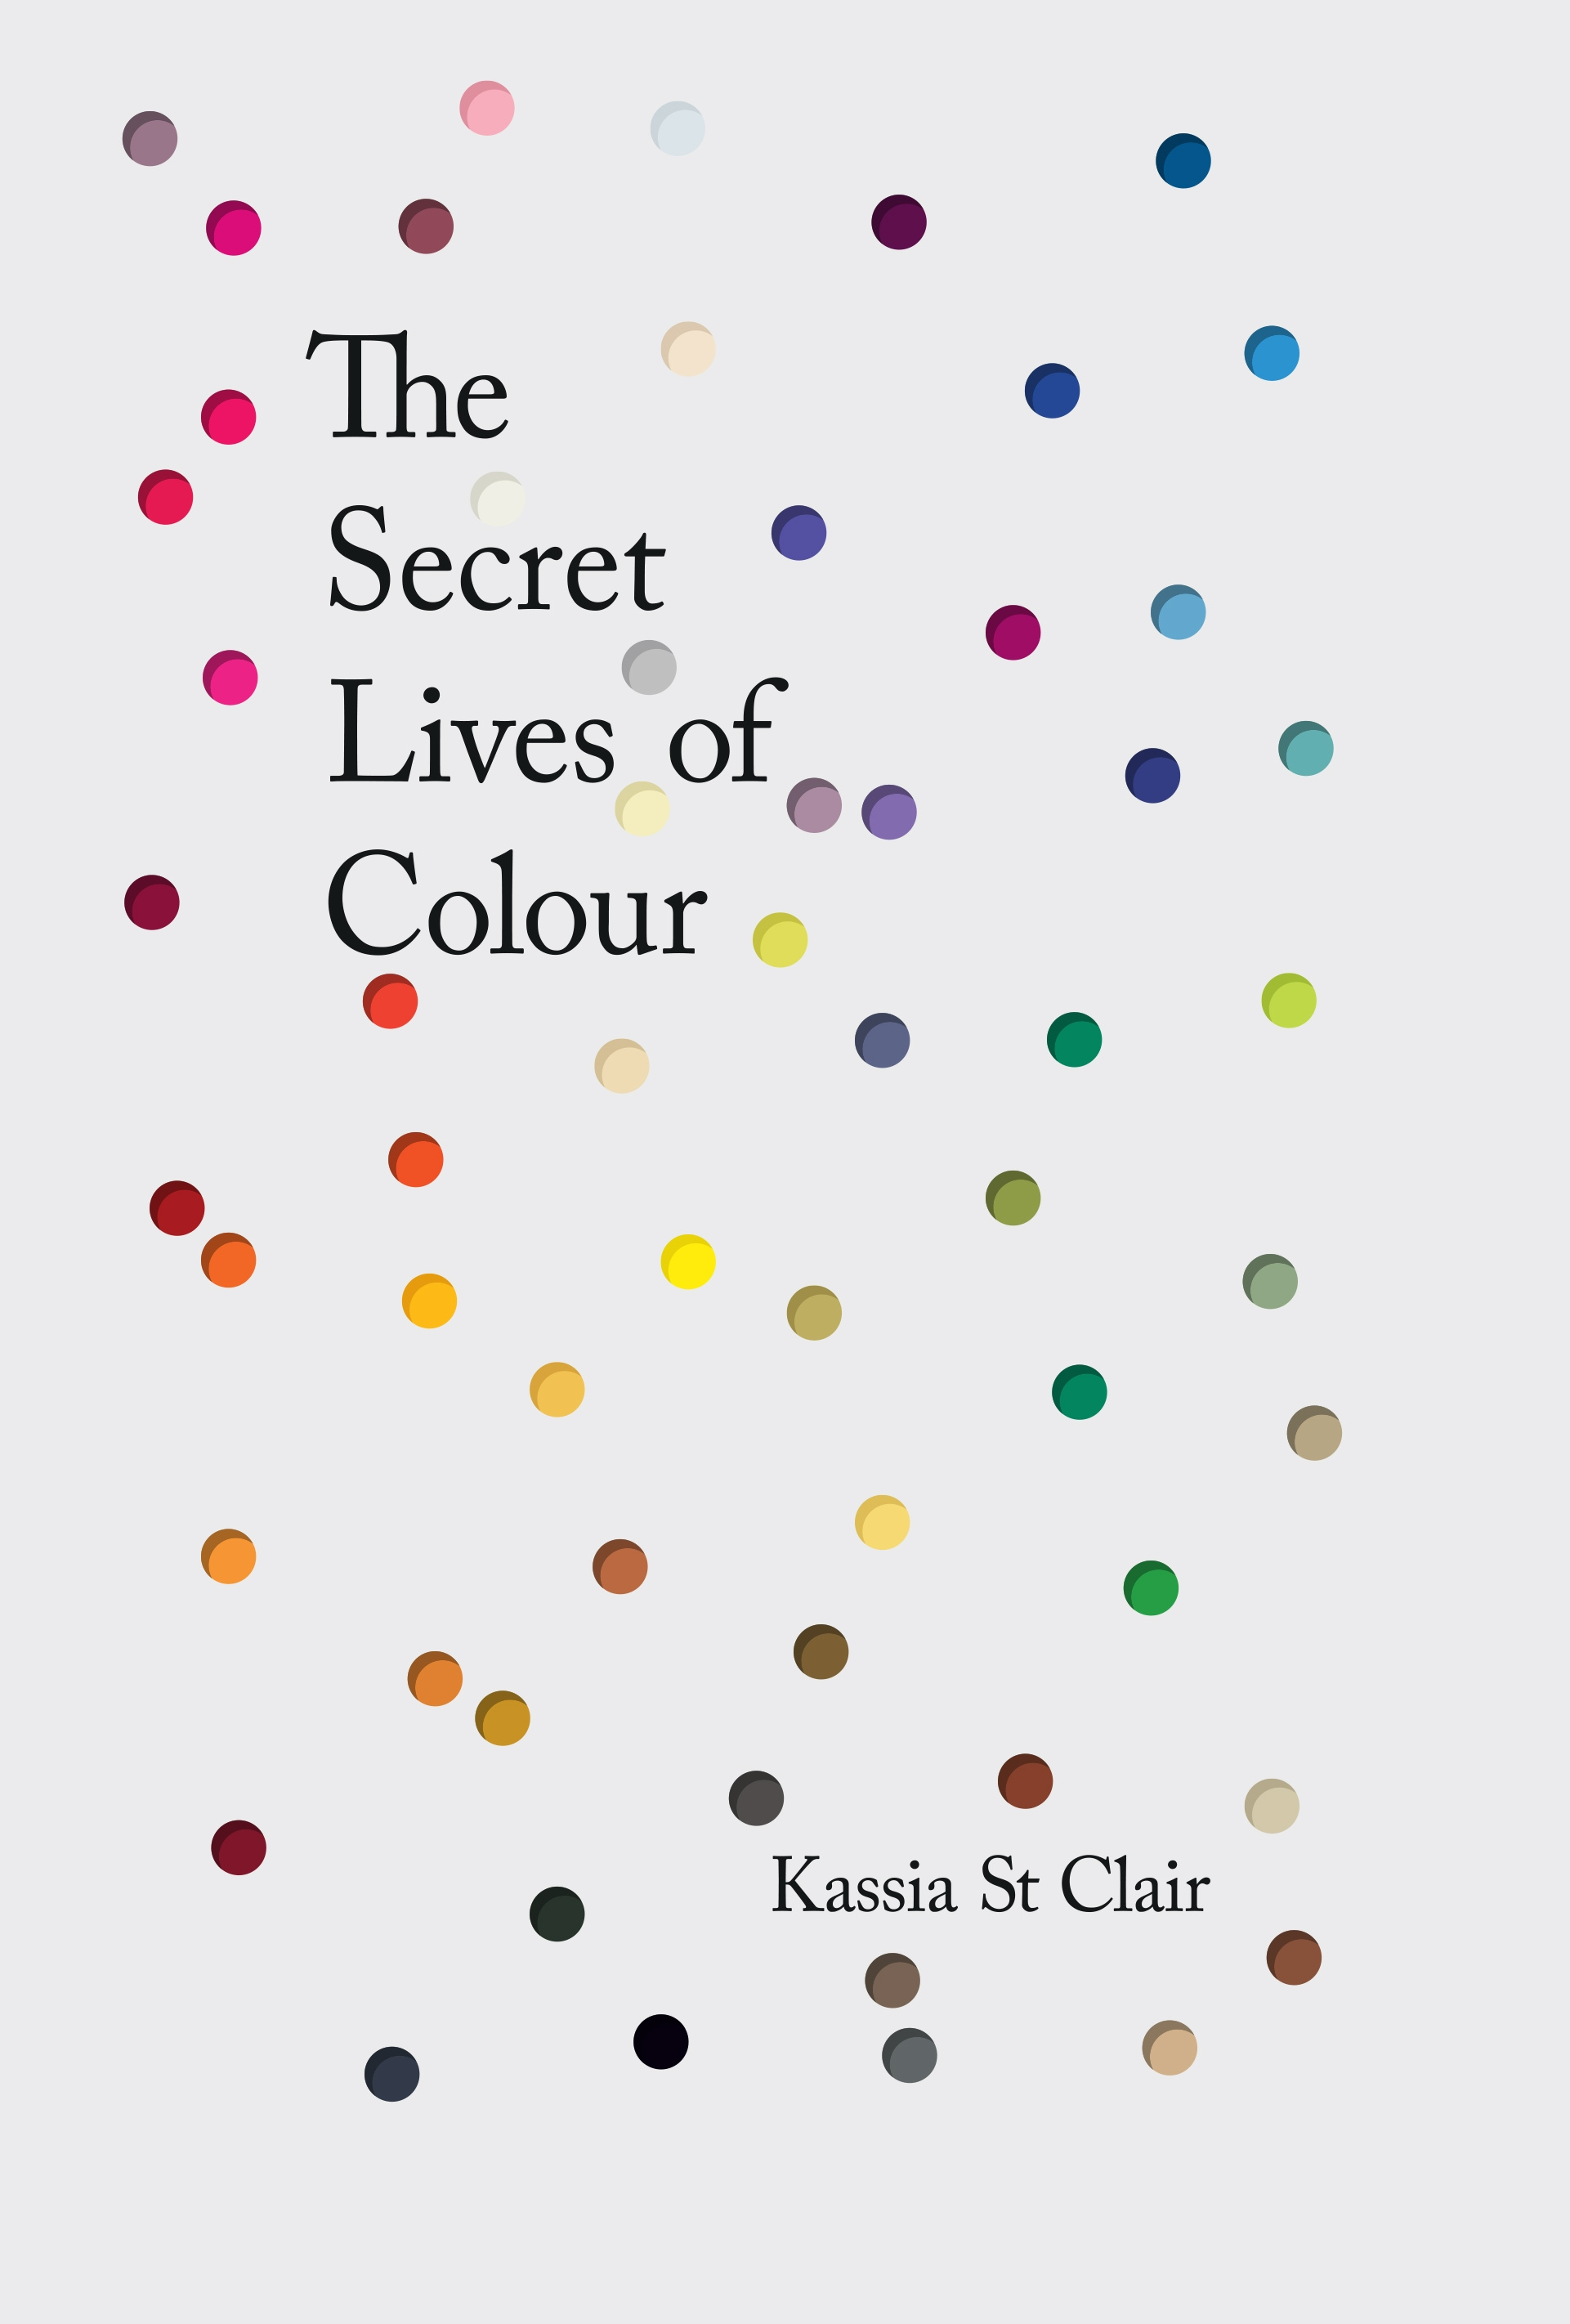 The Secret Lives of Colour by Kassia St Clair, ISBN: 9781473630819